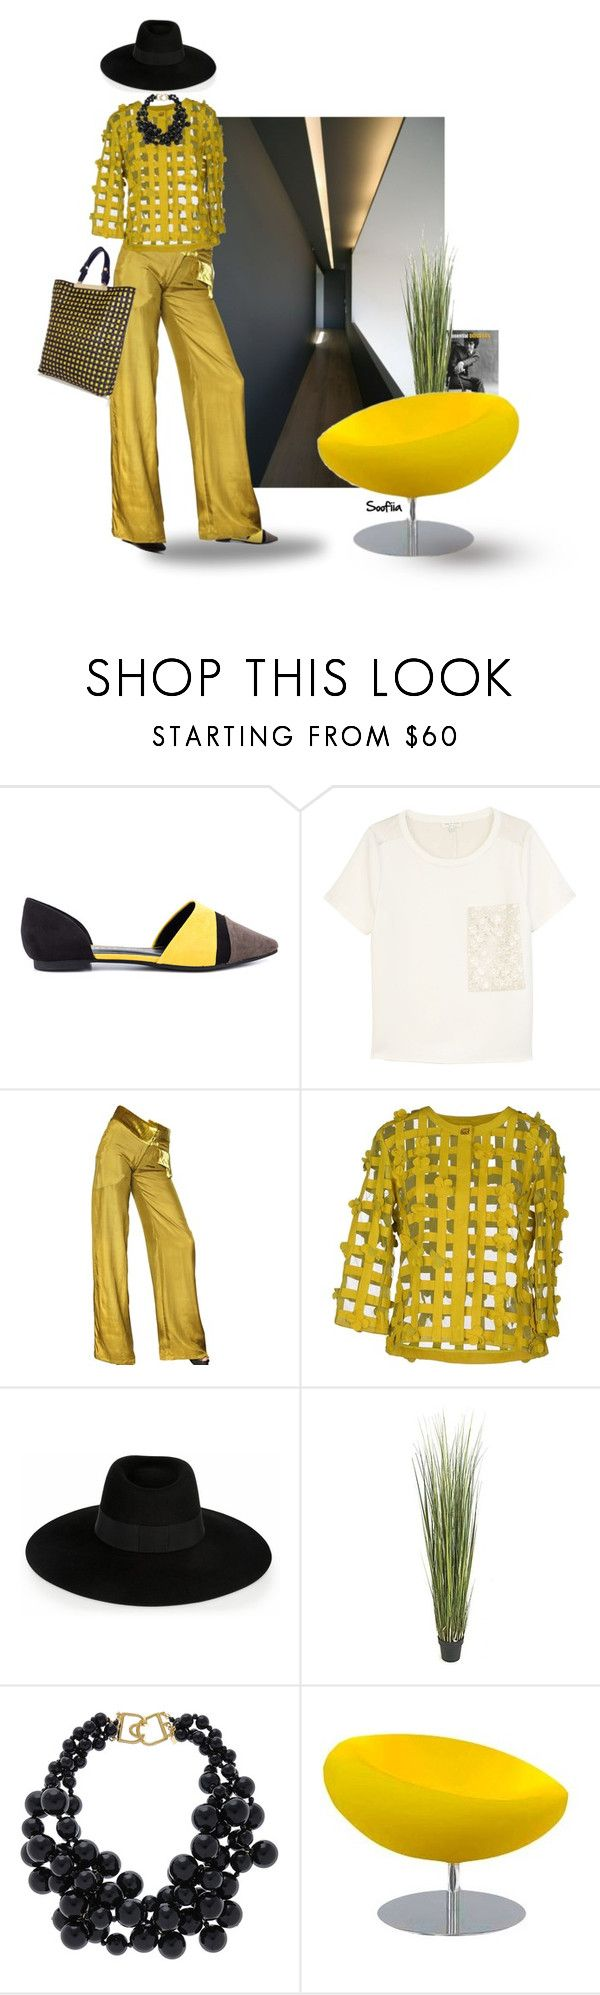 """Mellow yellow. With music"" by soofiia ❤ liked on Polyvore featuring Chinese Laundry, rag & bone, Michael Van Der Ham, Class Roberto Cavalli, Maison Michel, Kenneth Jay Lane, Tisettanta and Marni"